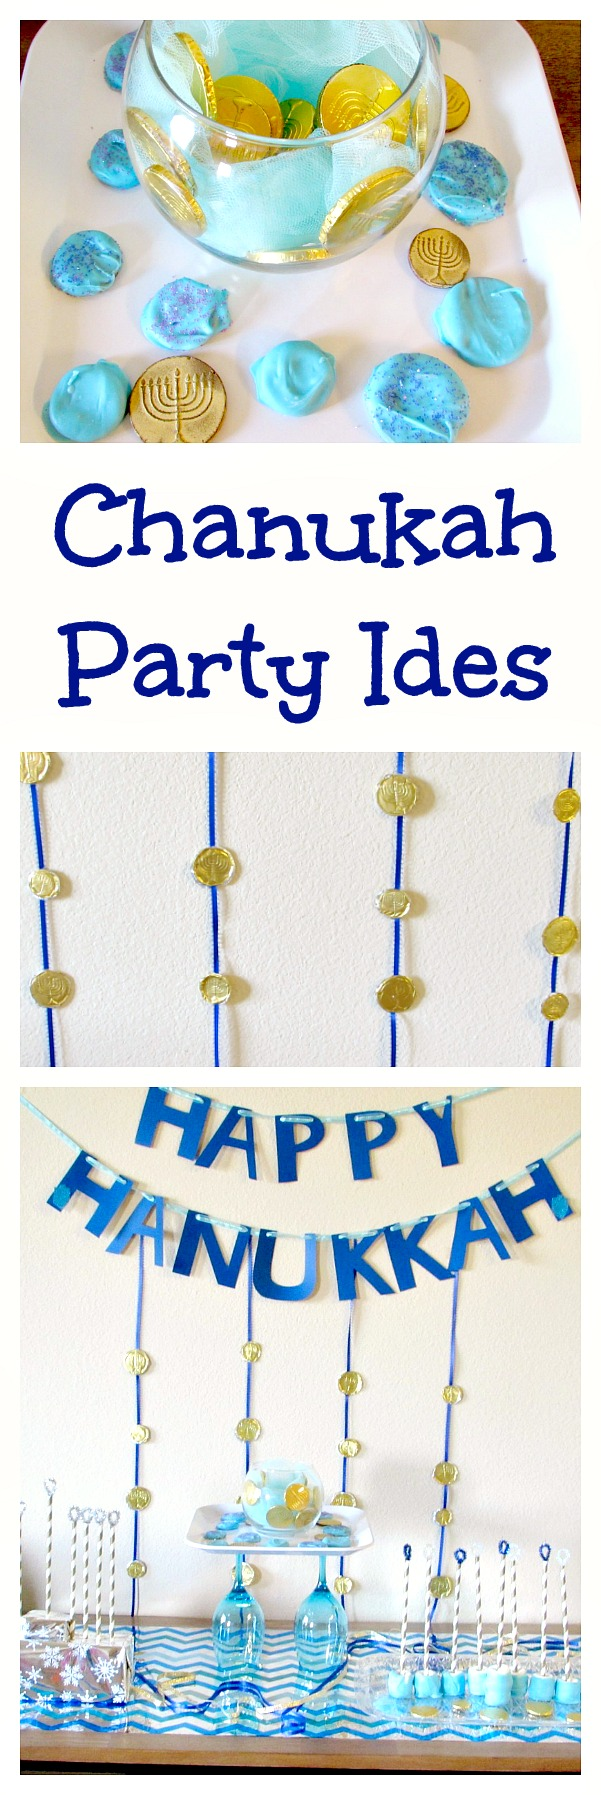 Chanukah Party Ideas